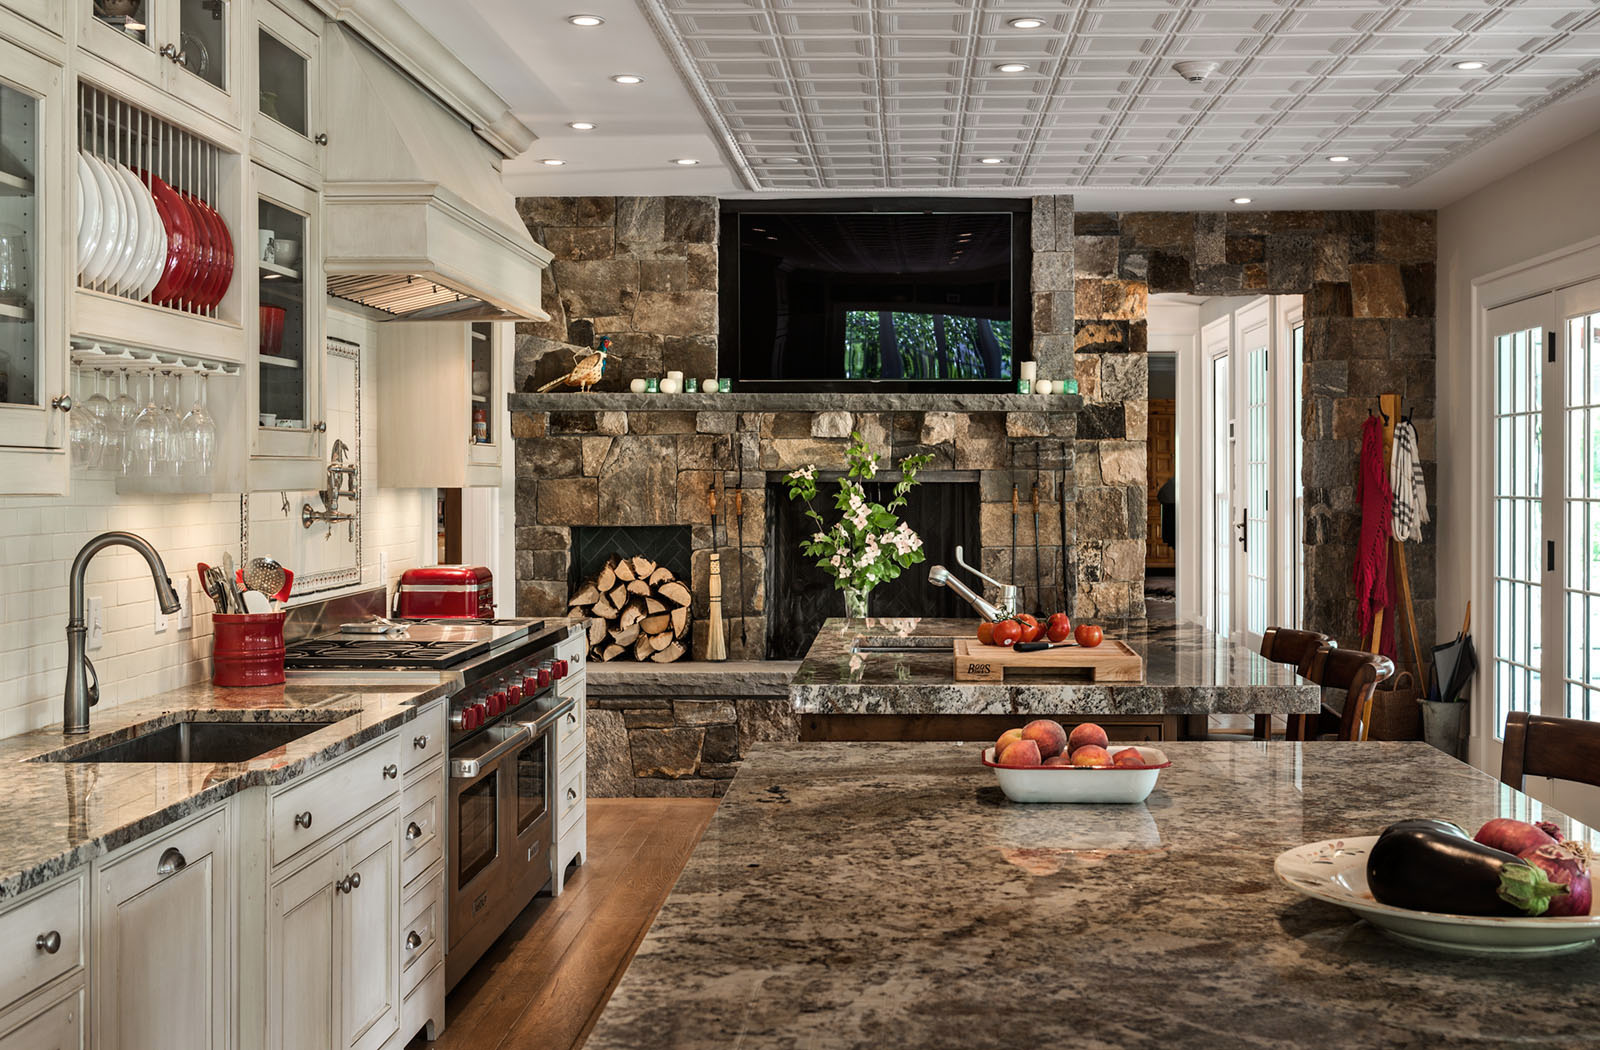 Stone Countertops and Fireplace Color